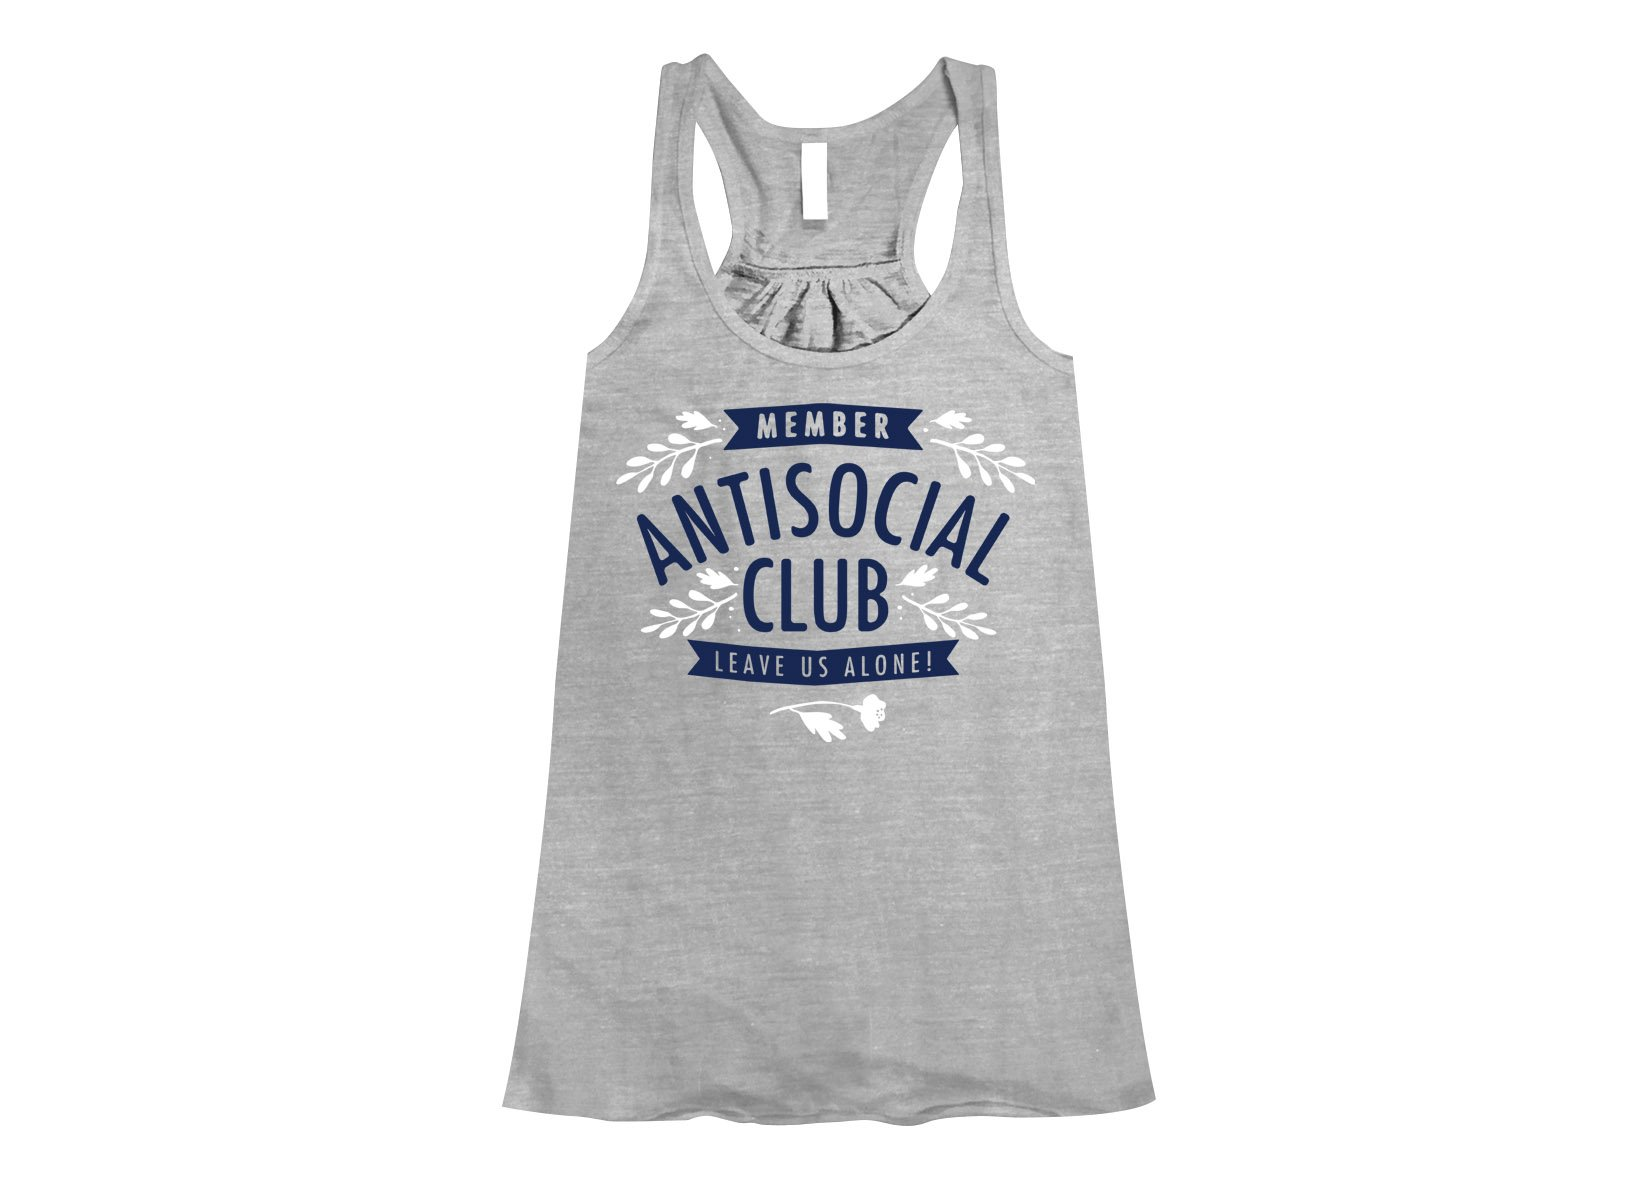 Antisocial Club on Womens Tanks T-Shirt